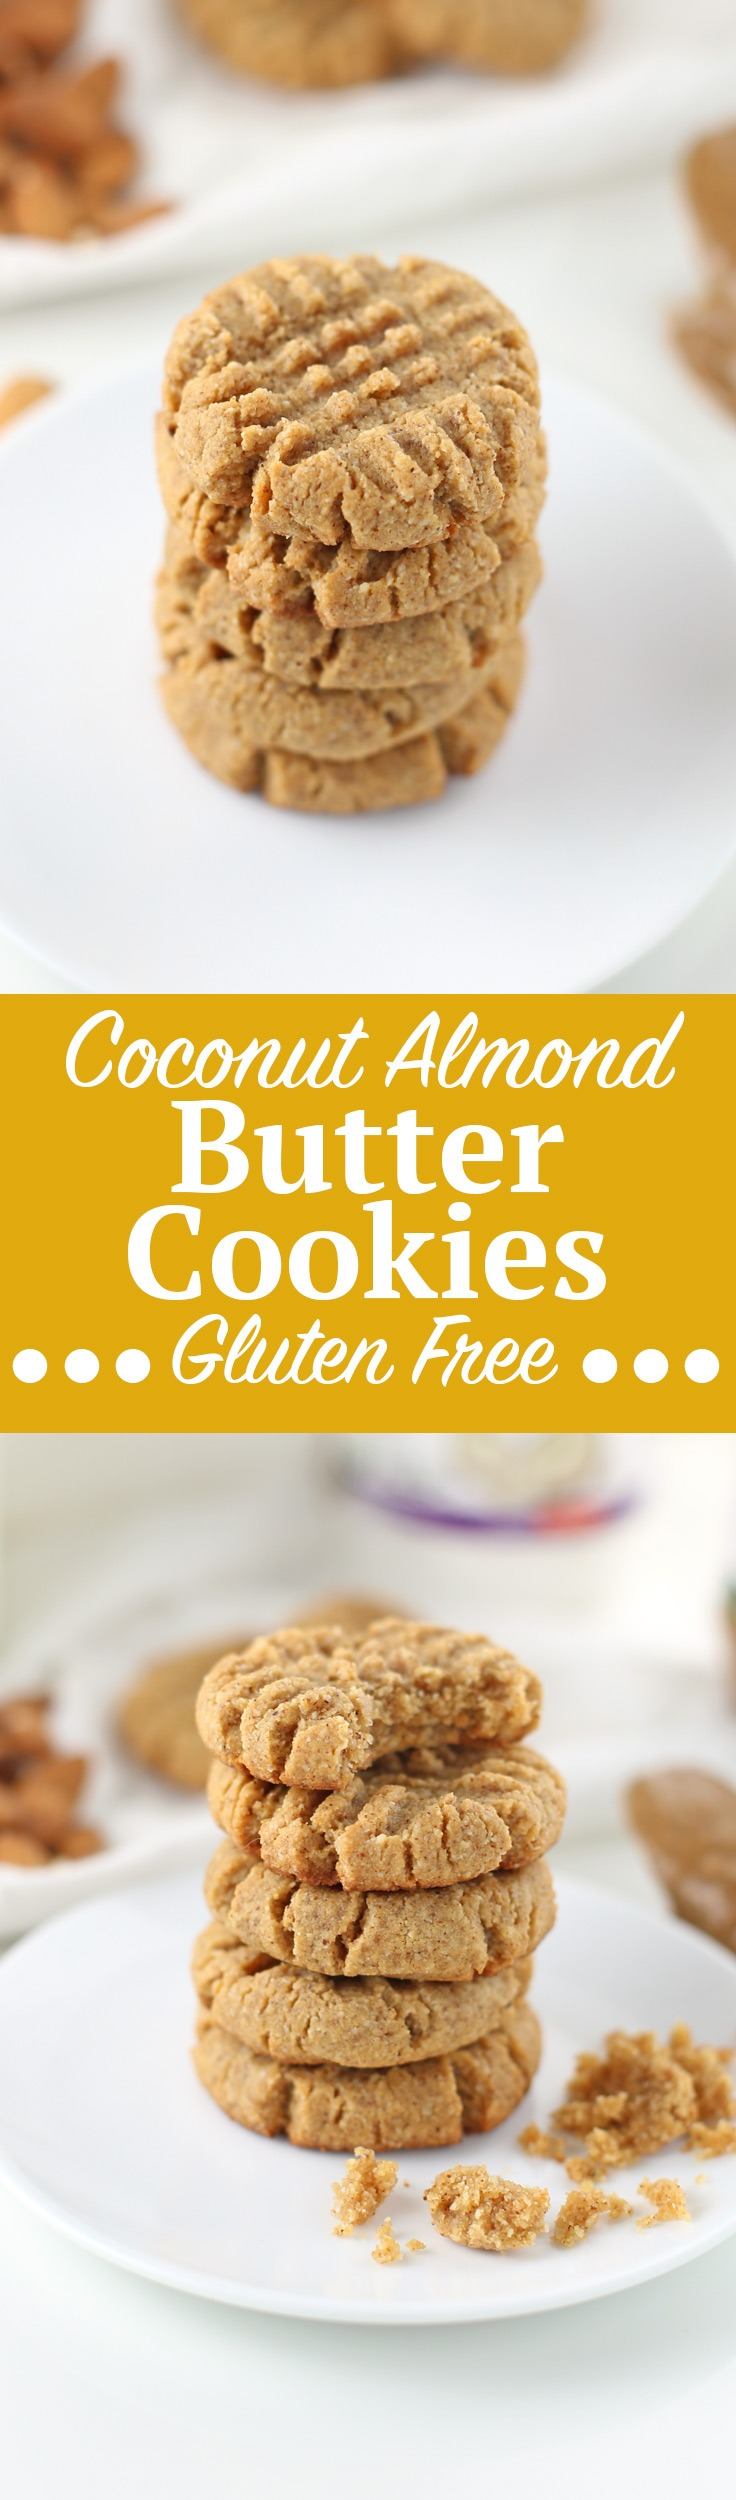 Gluten-Free Coconut Almond Butter Cookies {Low Sugar}. Chewy, coconut almond butter cookie recipe made with ingredients from ShopRite's Wholesome Pantry line! This is a gluten-free, low sugar cookie recipe you can enjoy in less than an hour! Only 1.3g sugar per cookie. Get the full recipe and ingredient list by clicking through! #sponsored #ShopRite #WholesomePantry